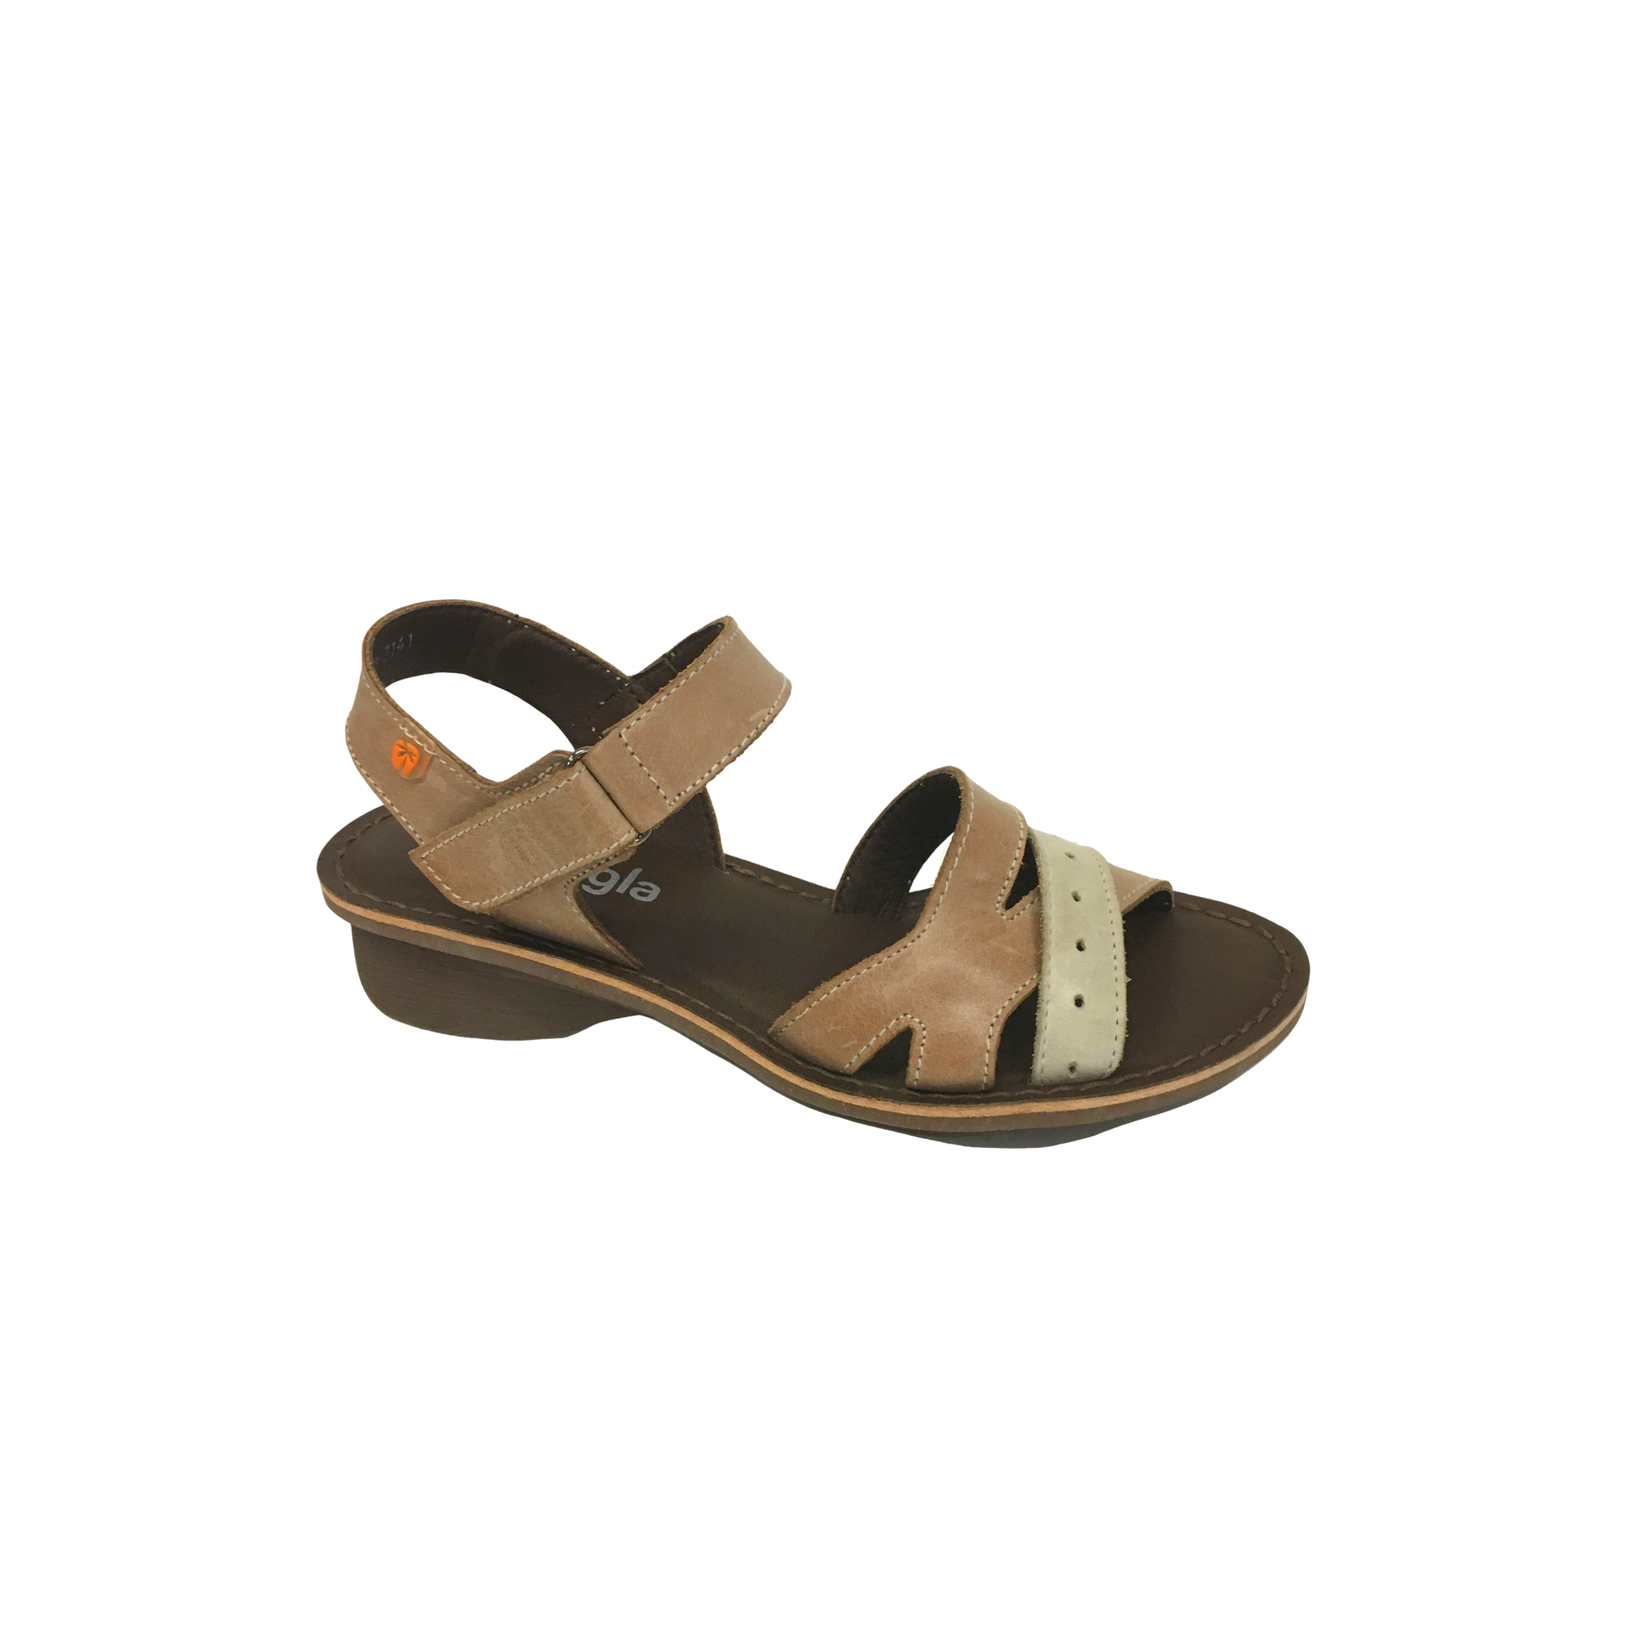 Jungla 7141 only size 41